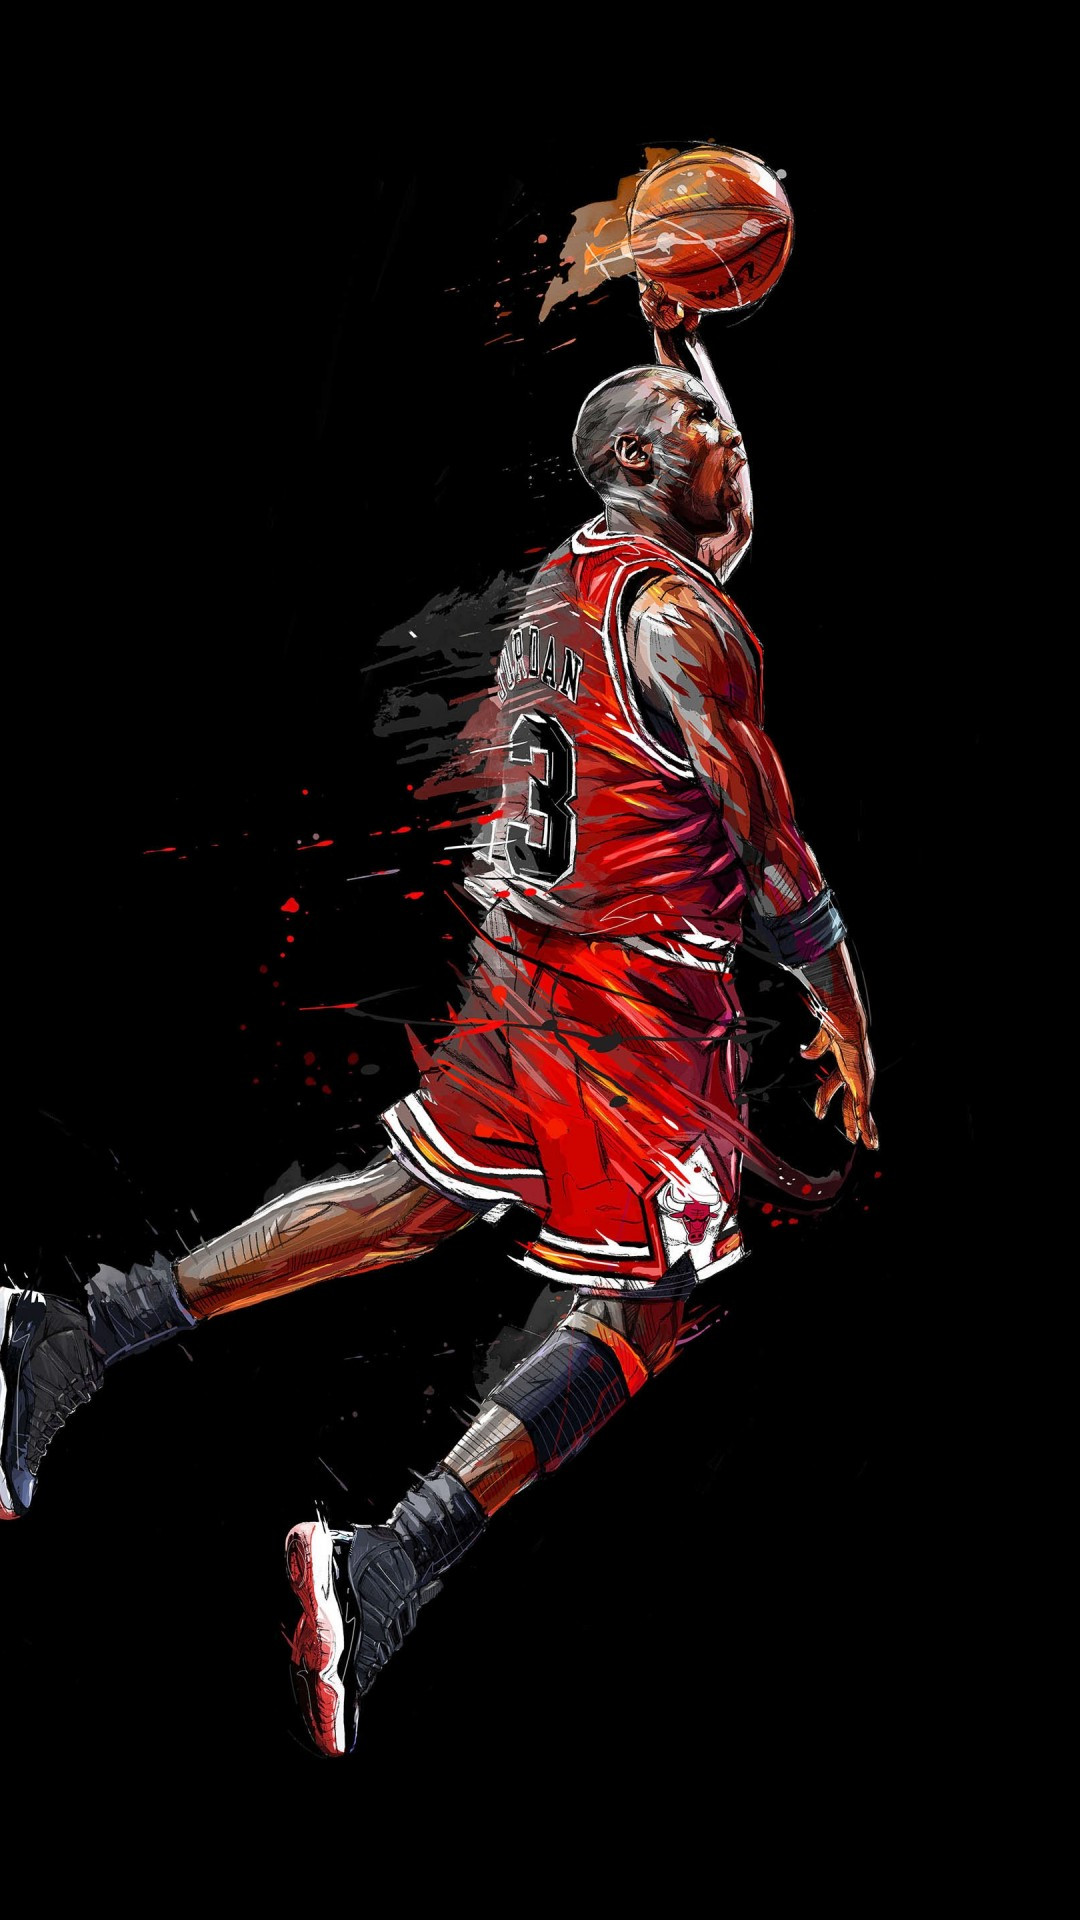 michael jordan basketball artwork